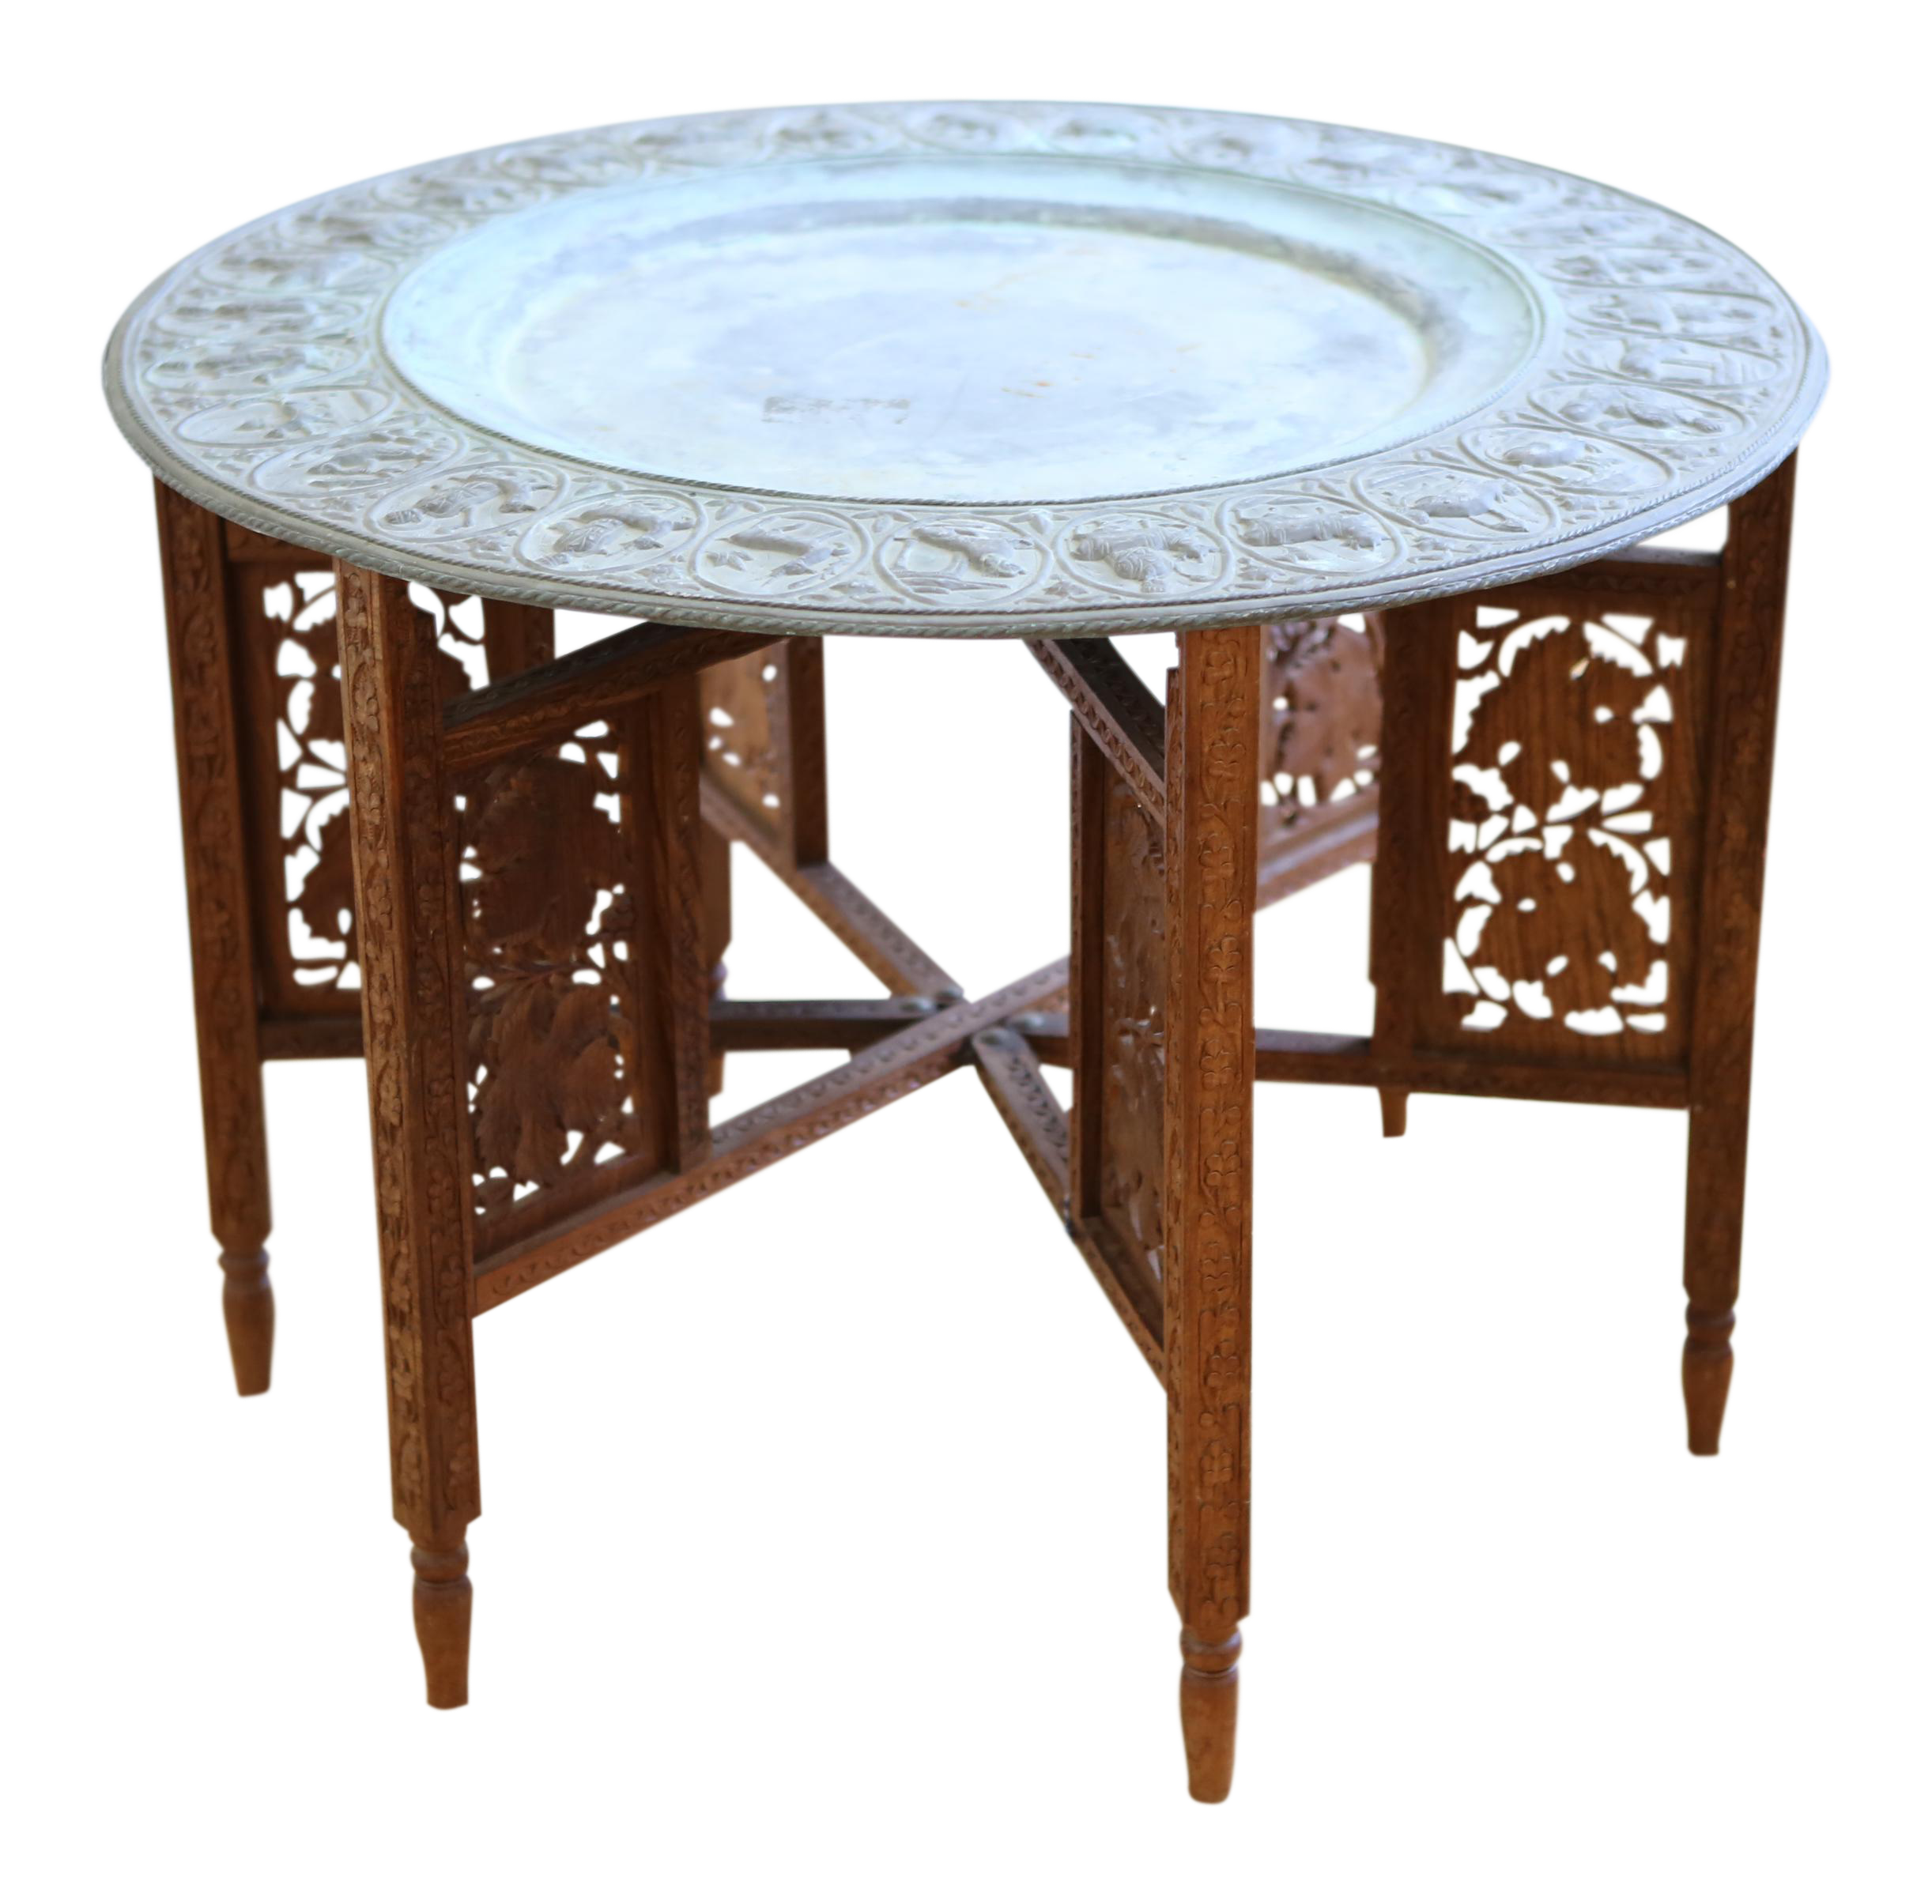 Moroccan Tray Accent Table Chairish